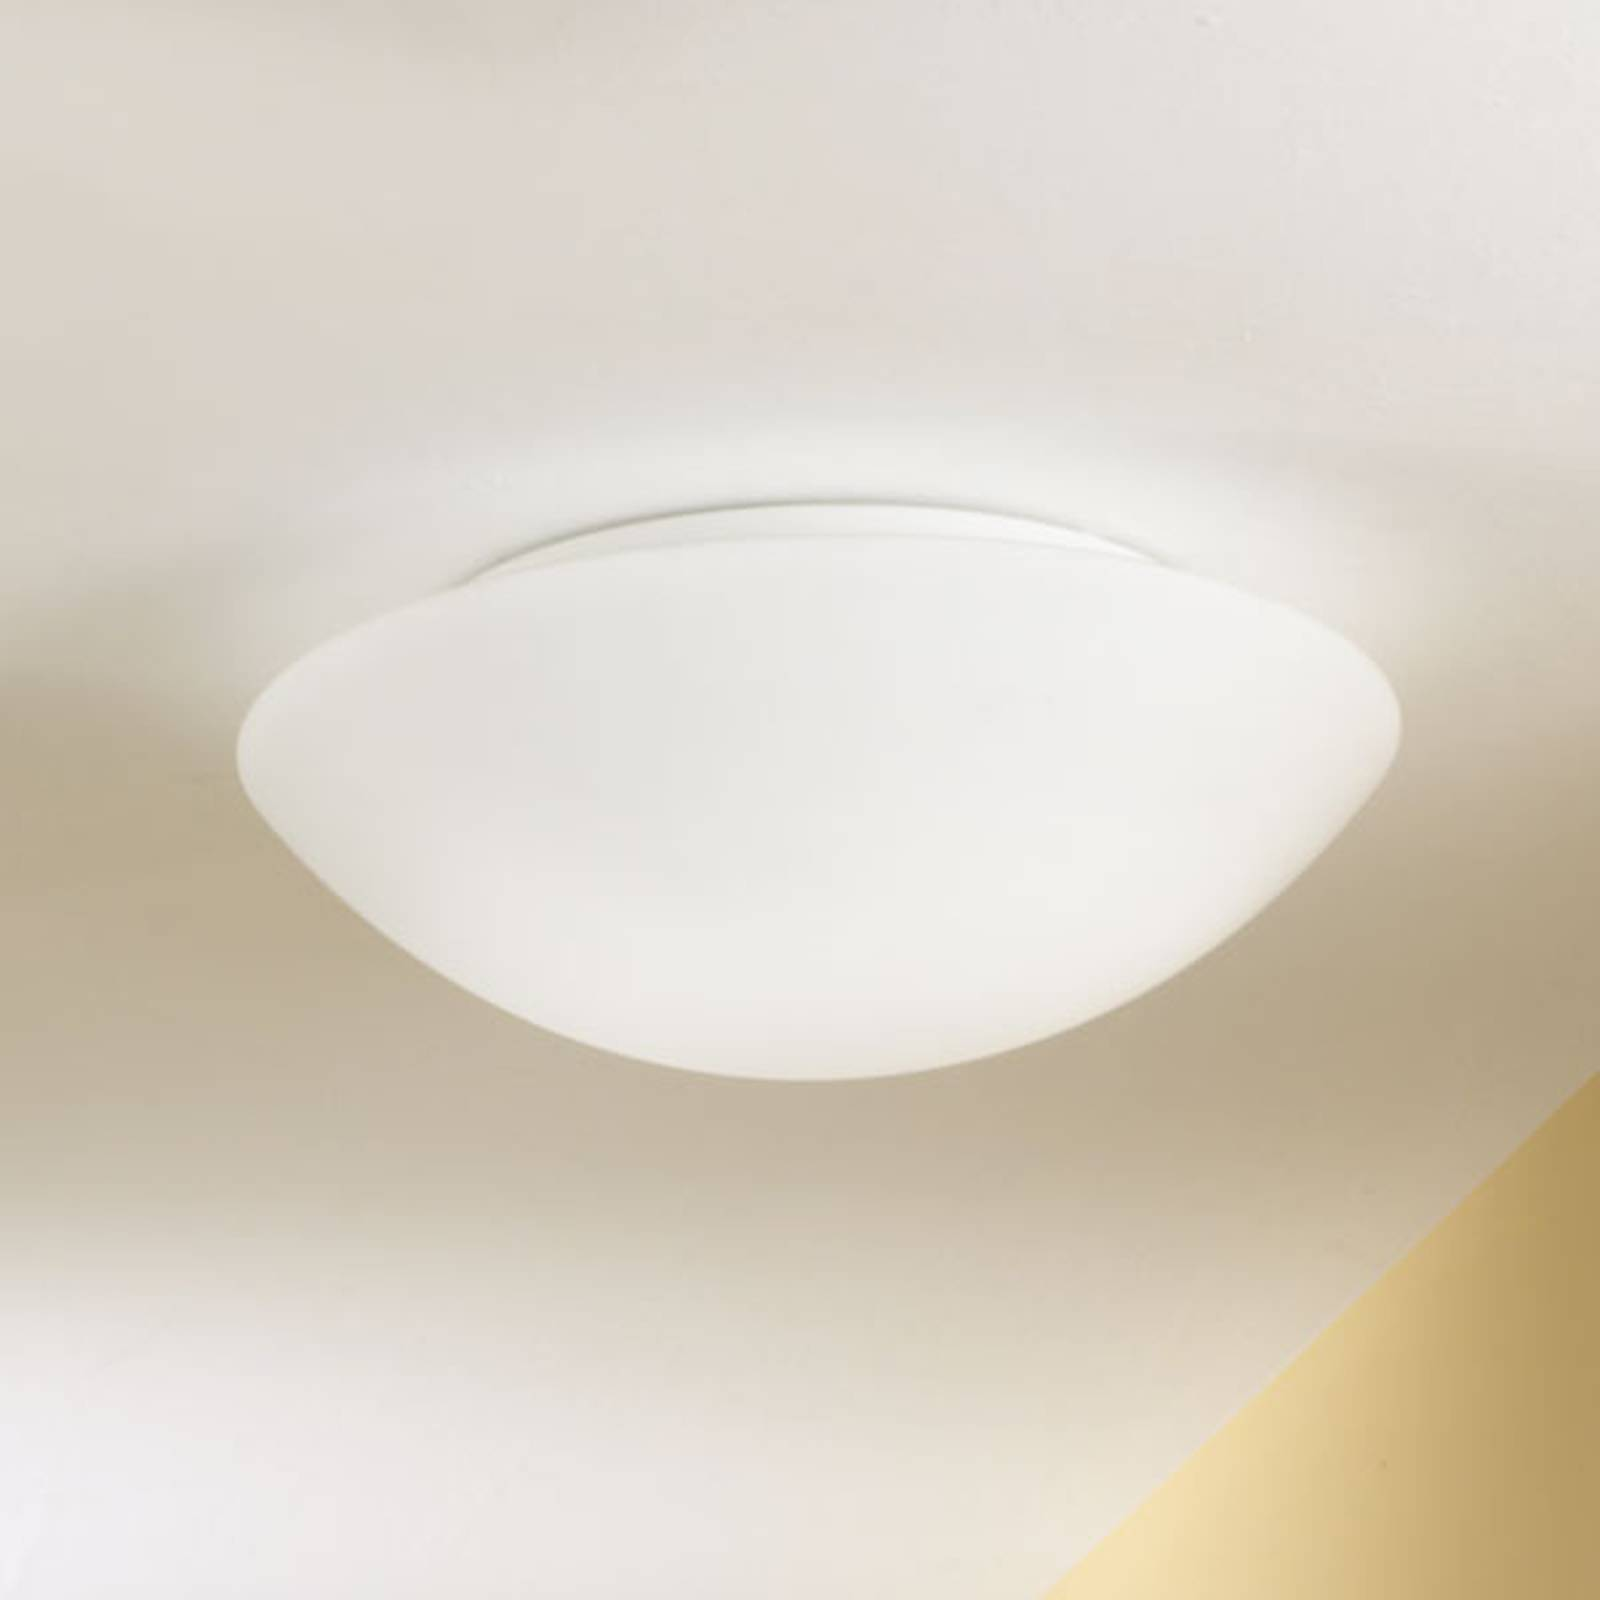 Ceiling and wall light PANDORA 30 cm from FABAS LUCE